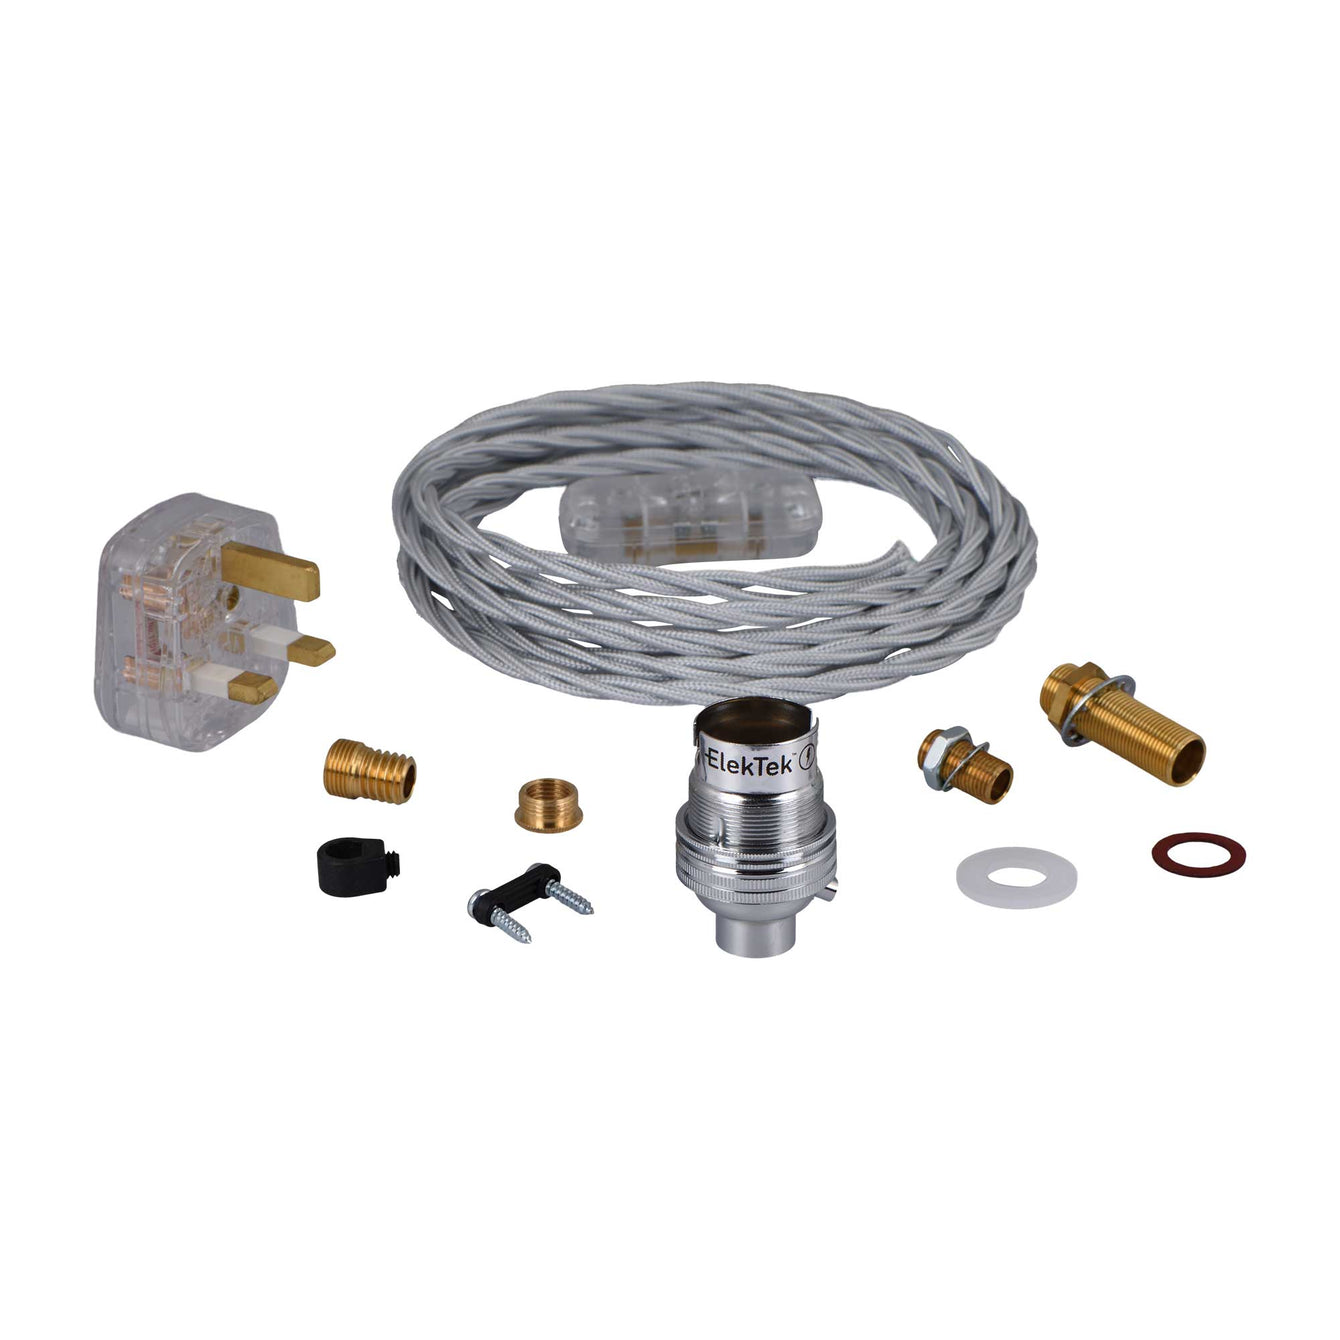 ElekTek Premium Lamp Kit Chrome Unswitched B22 Lamp Holder with Flex and 3A UK Plug Twisted